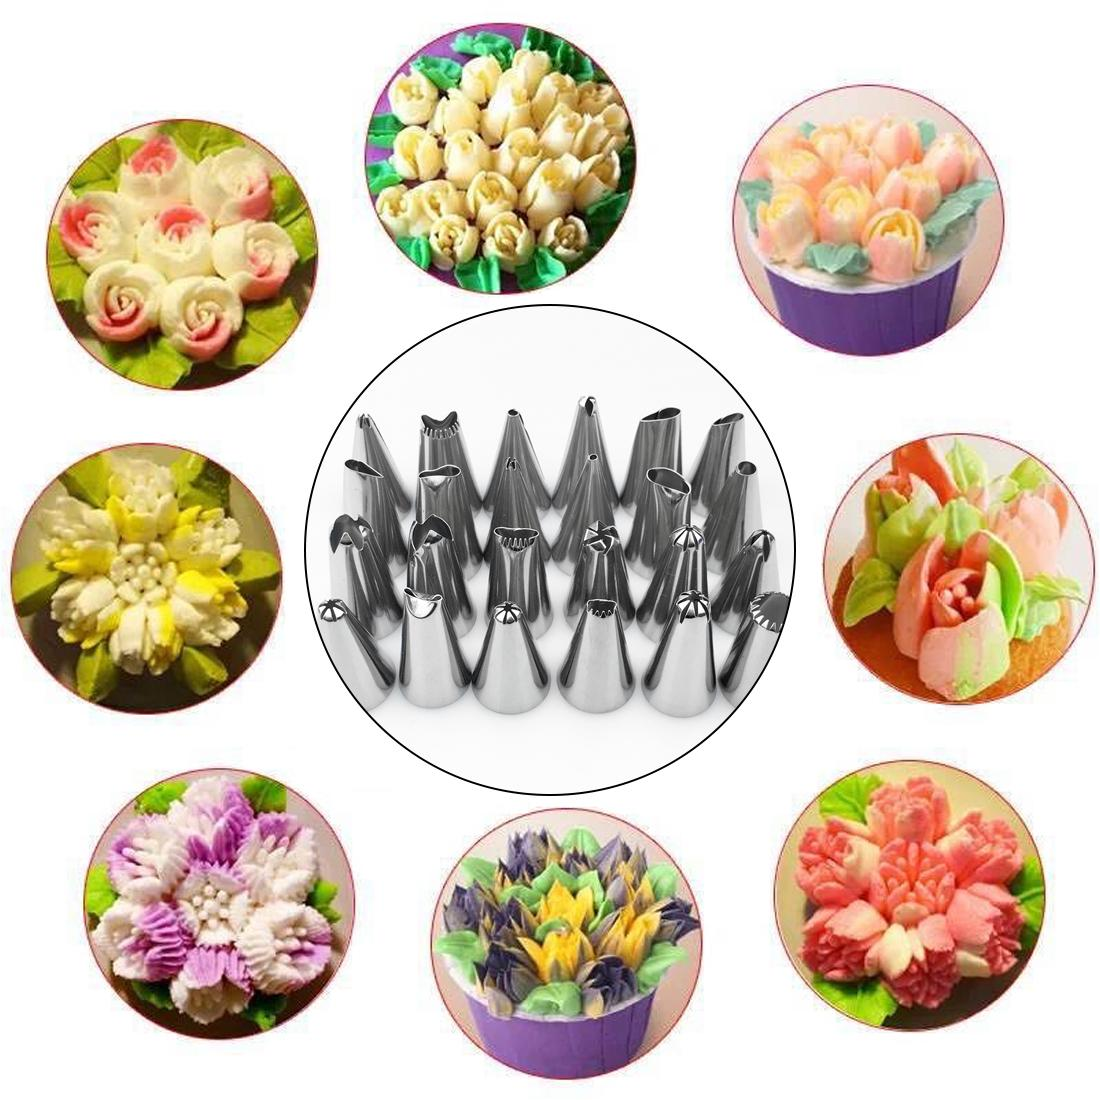 Cake Decorating Stainless steel Large Icing Piping Pastry Nozzles Pastry Tips Kitchen Accessories Baking Cake decor 24Pcs/set X 2set